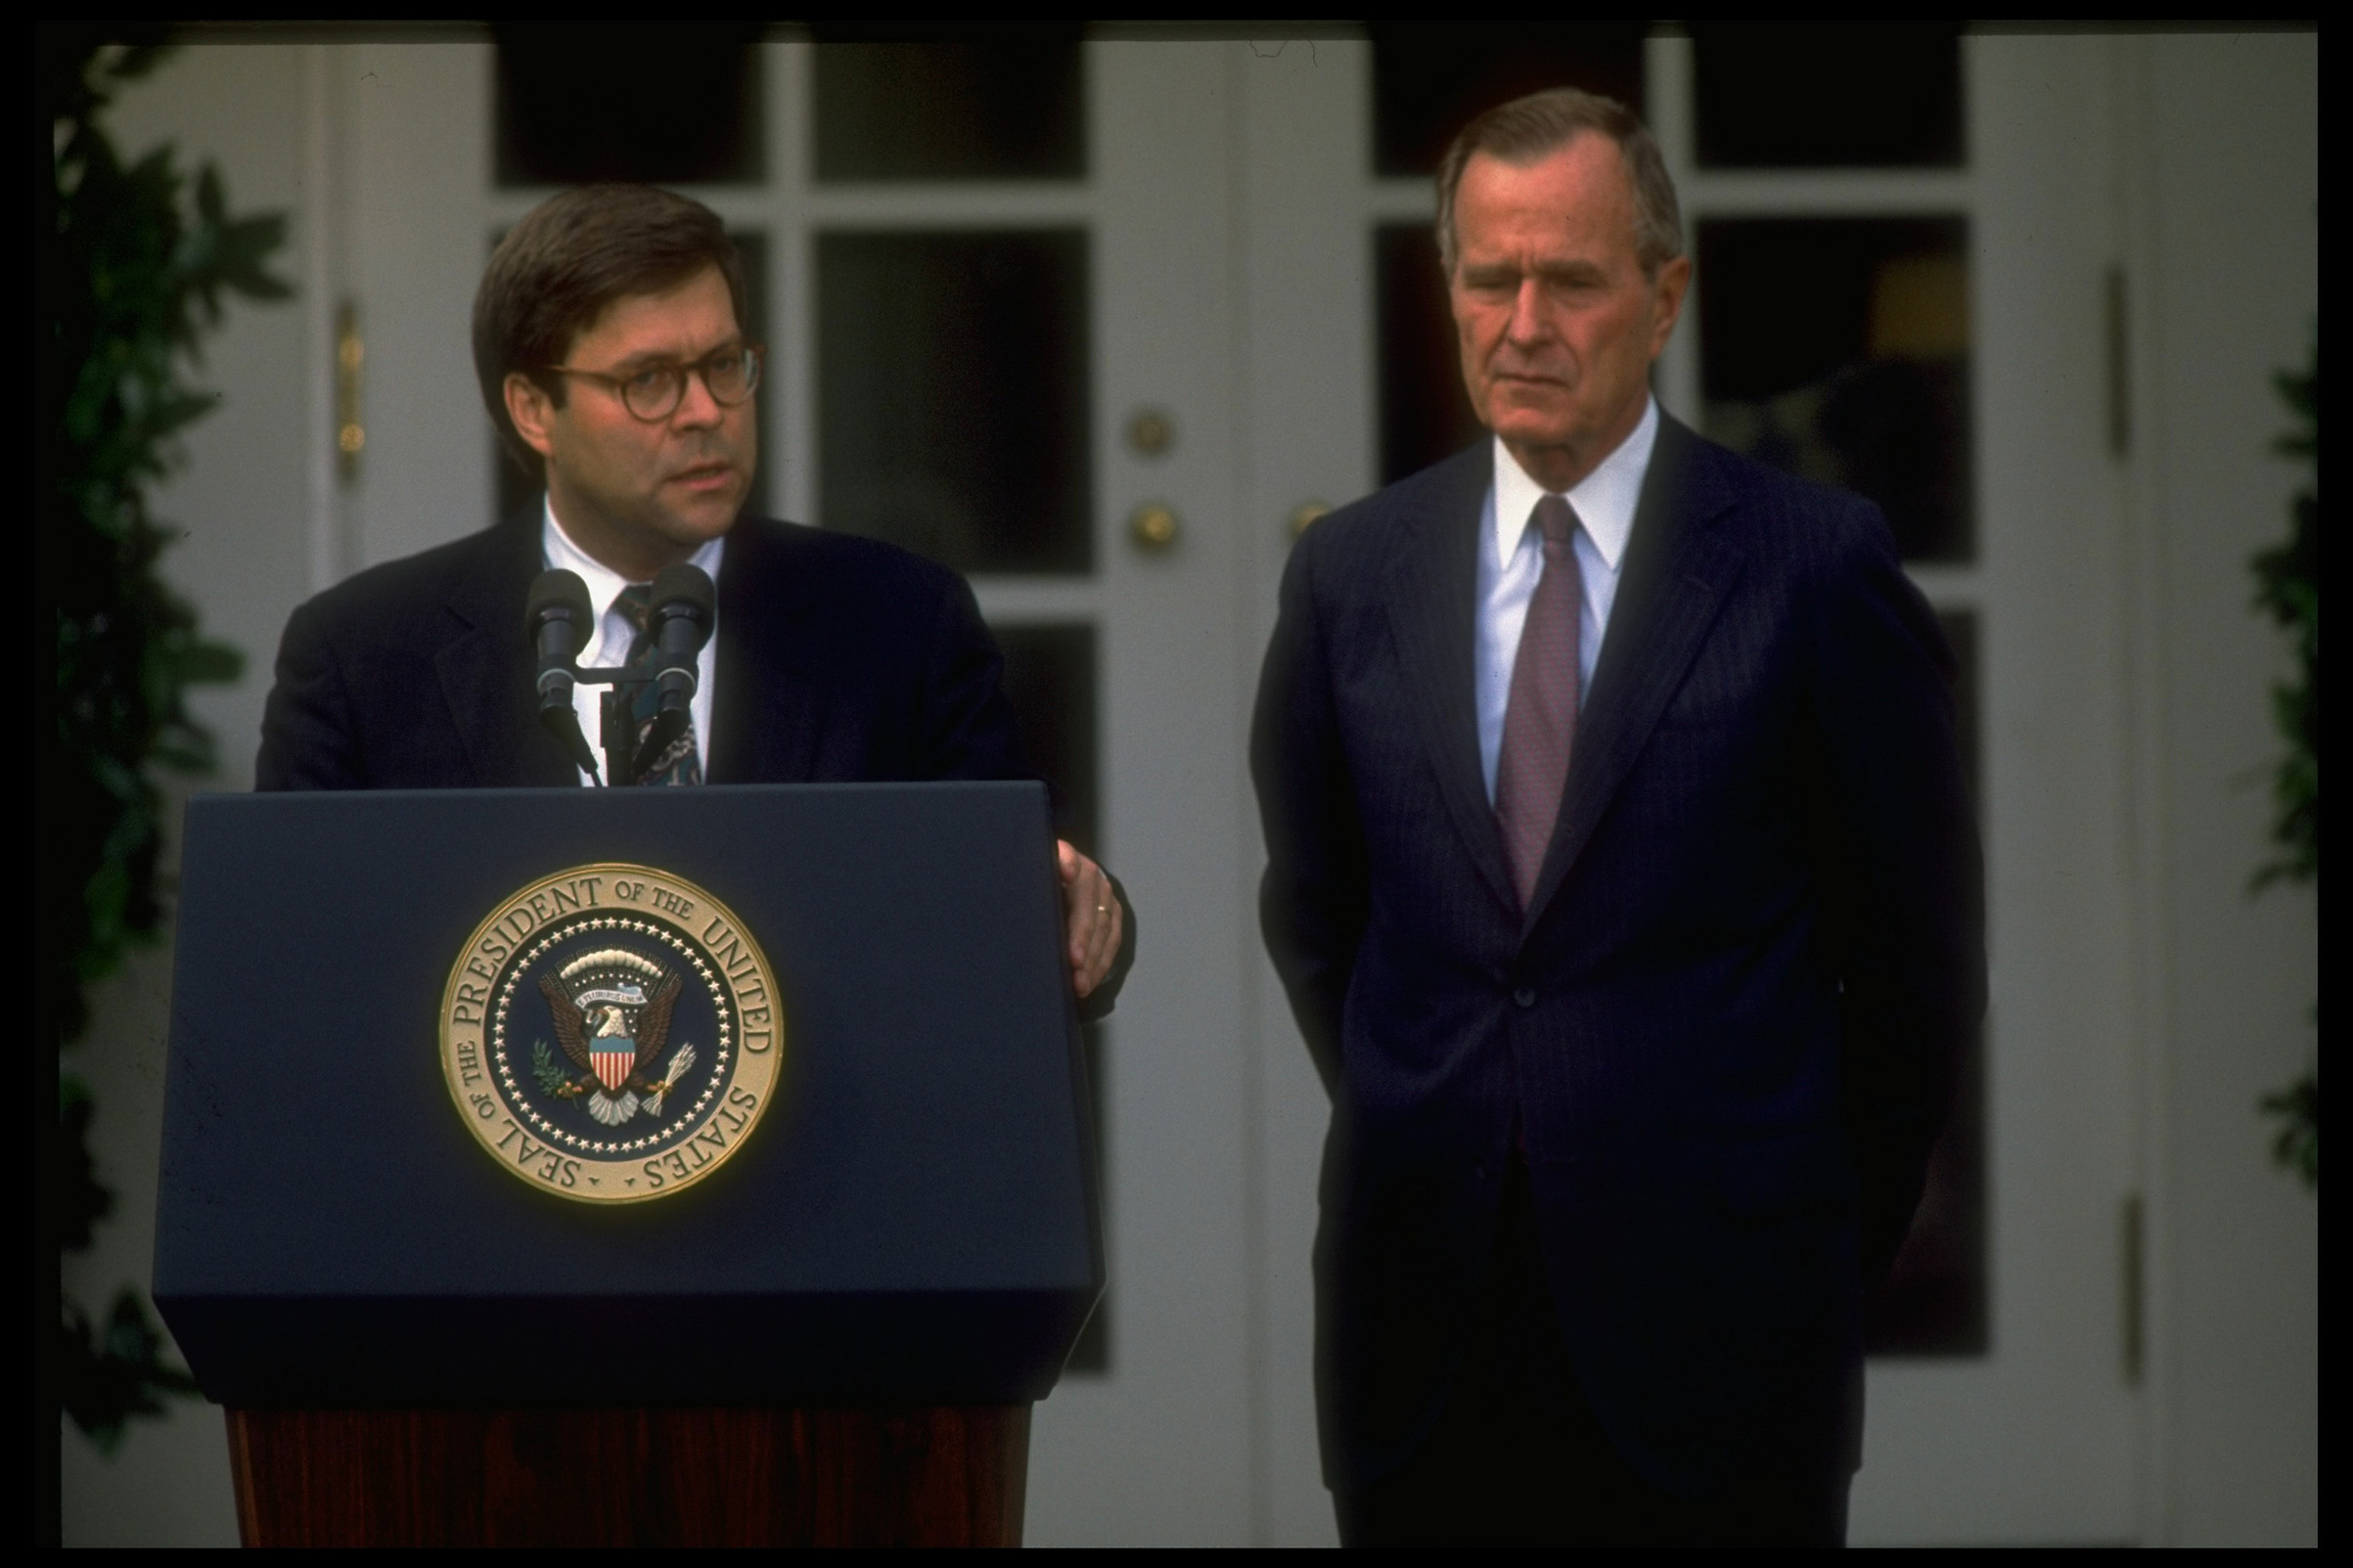 Barr joins President George H.W. Bush for the announcement of his nomination as AG in 1991